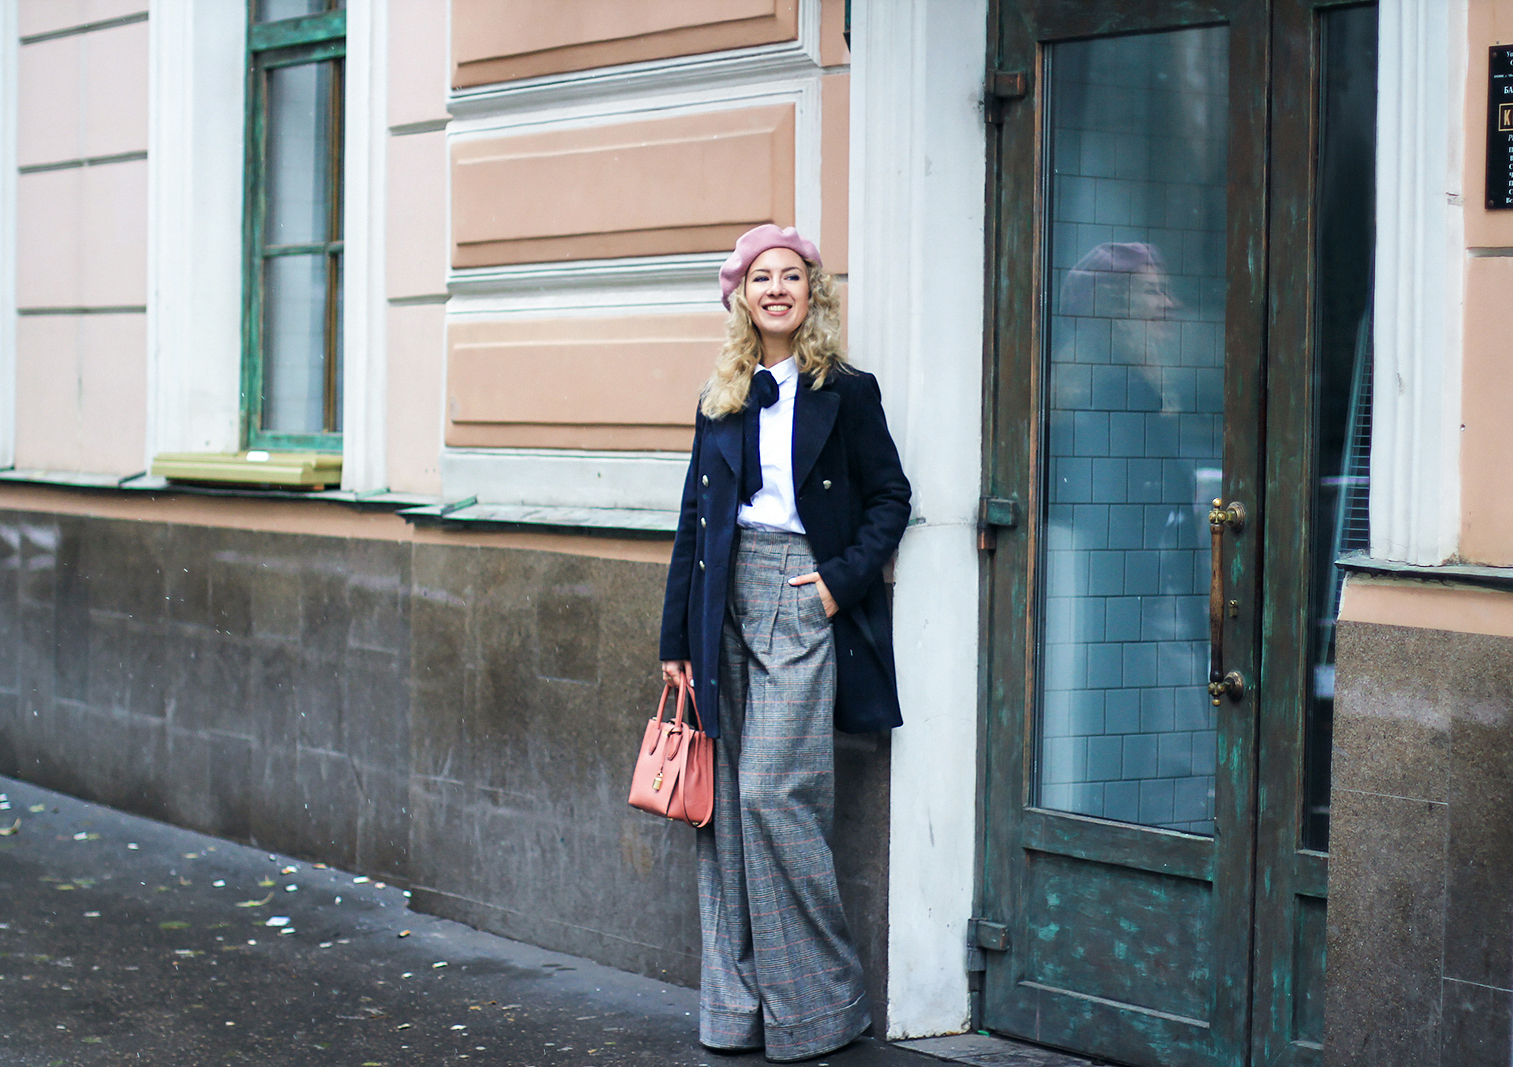 margarita_maslova_military_coat_zara_pants_pink_michael_kors_bag_beret_streetlook